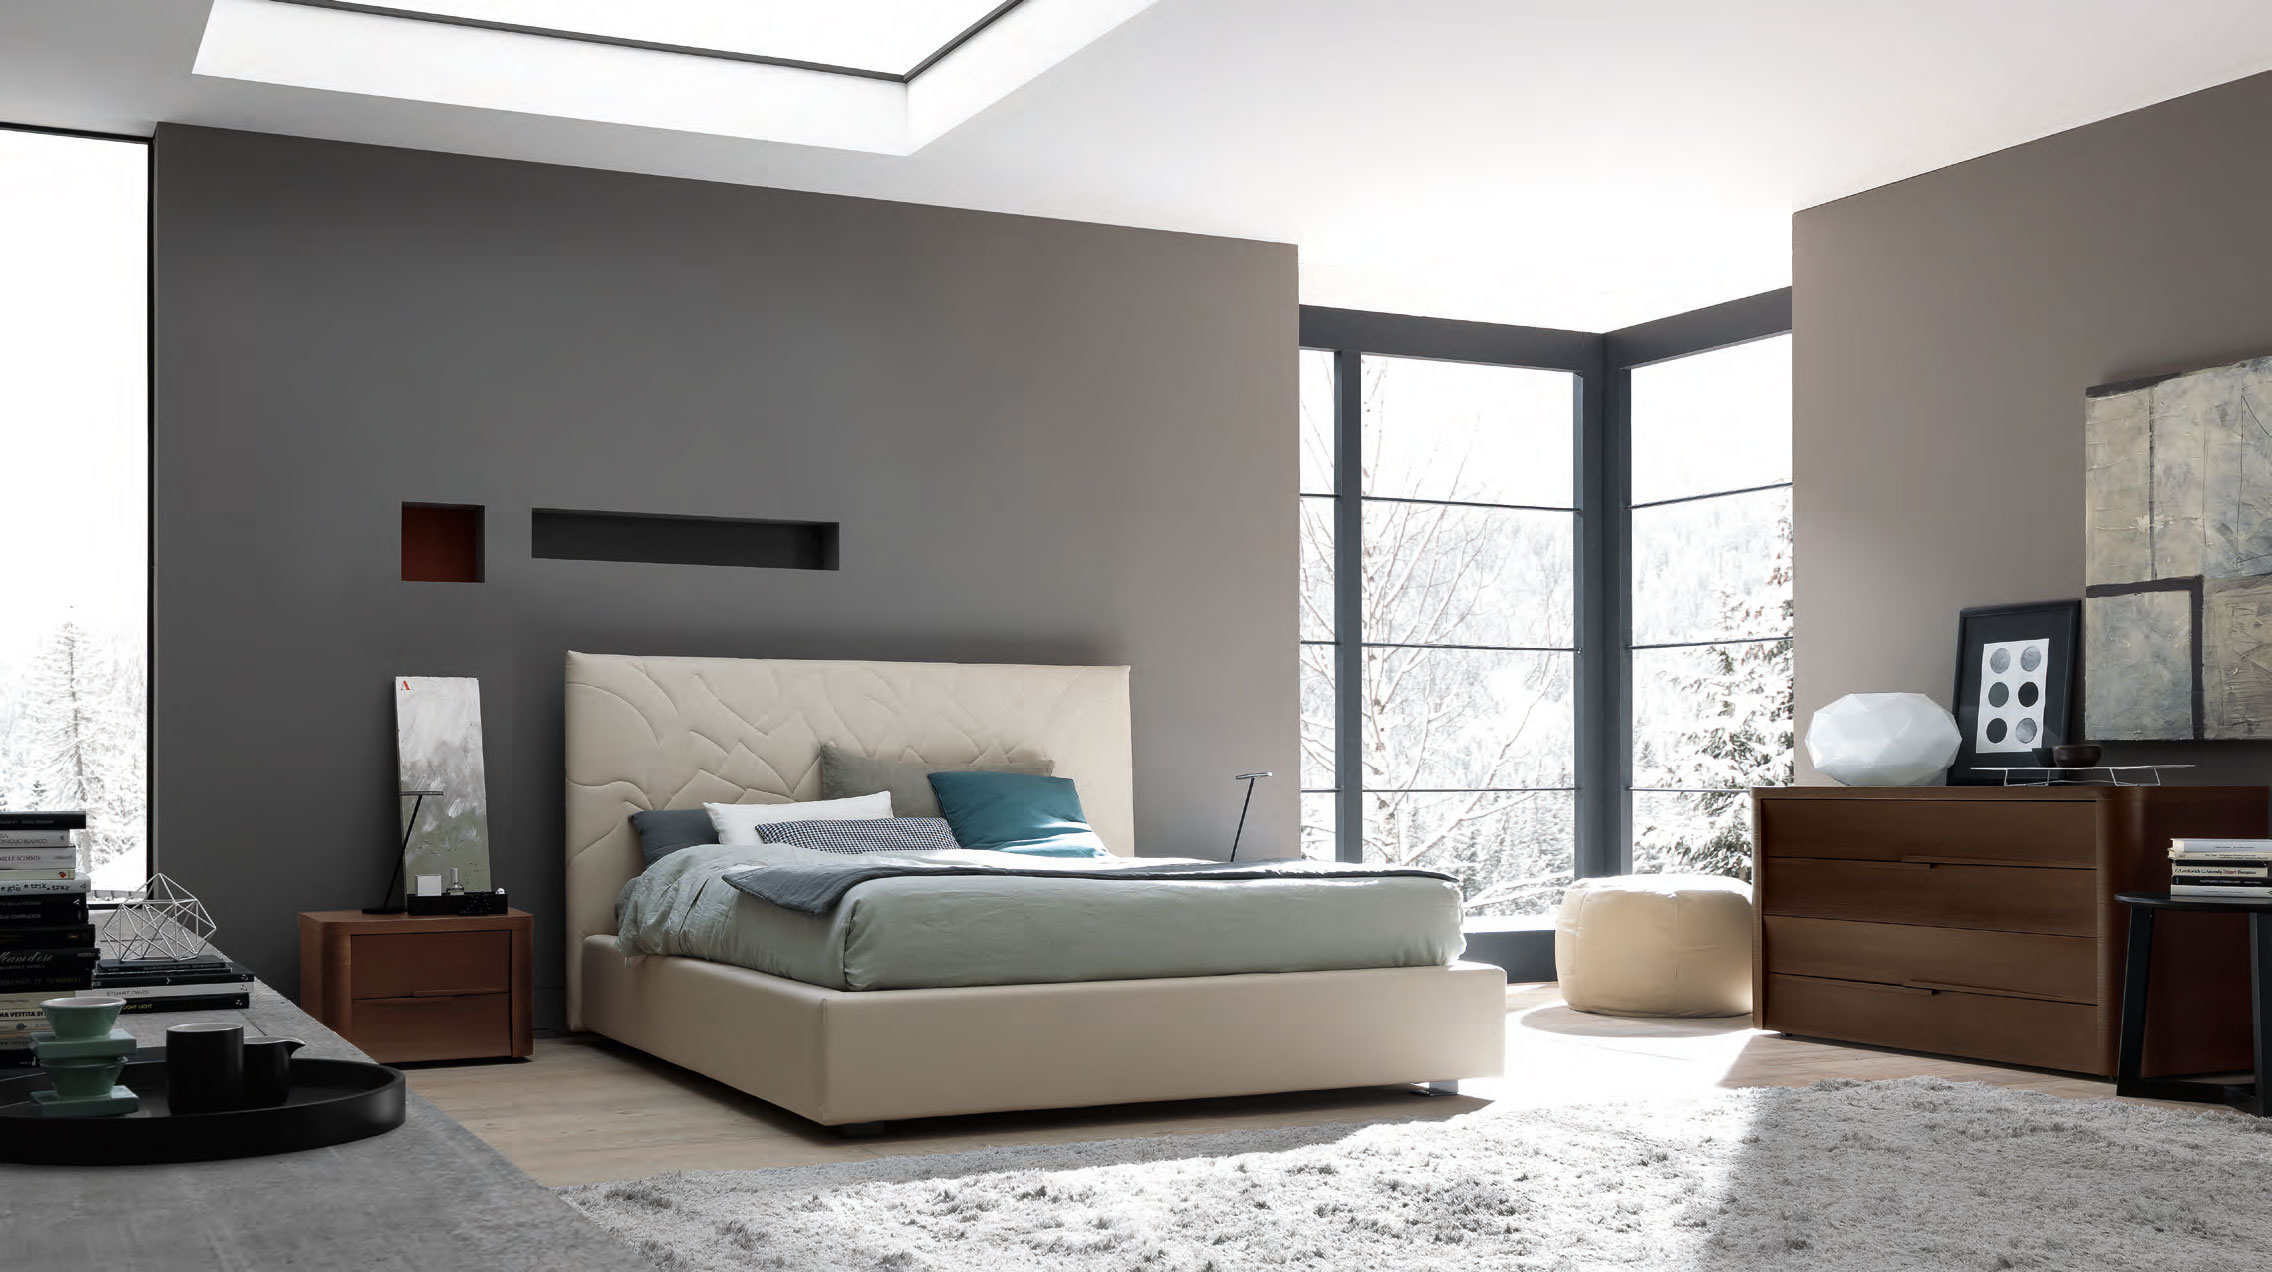 10 eye catching modern bedroom decoration ideas modern for Bedroom remodel